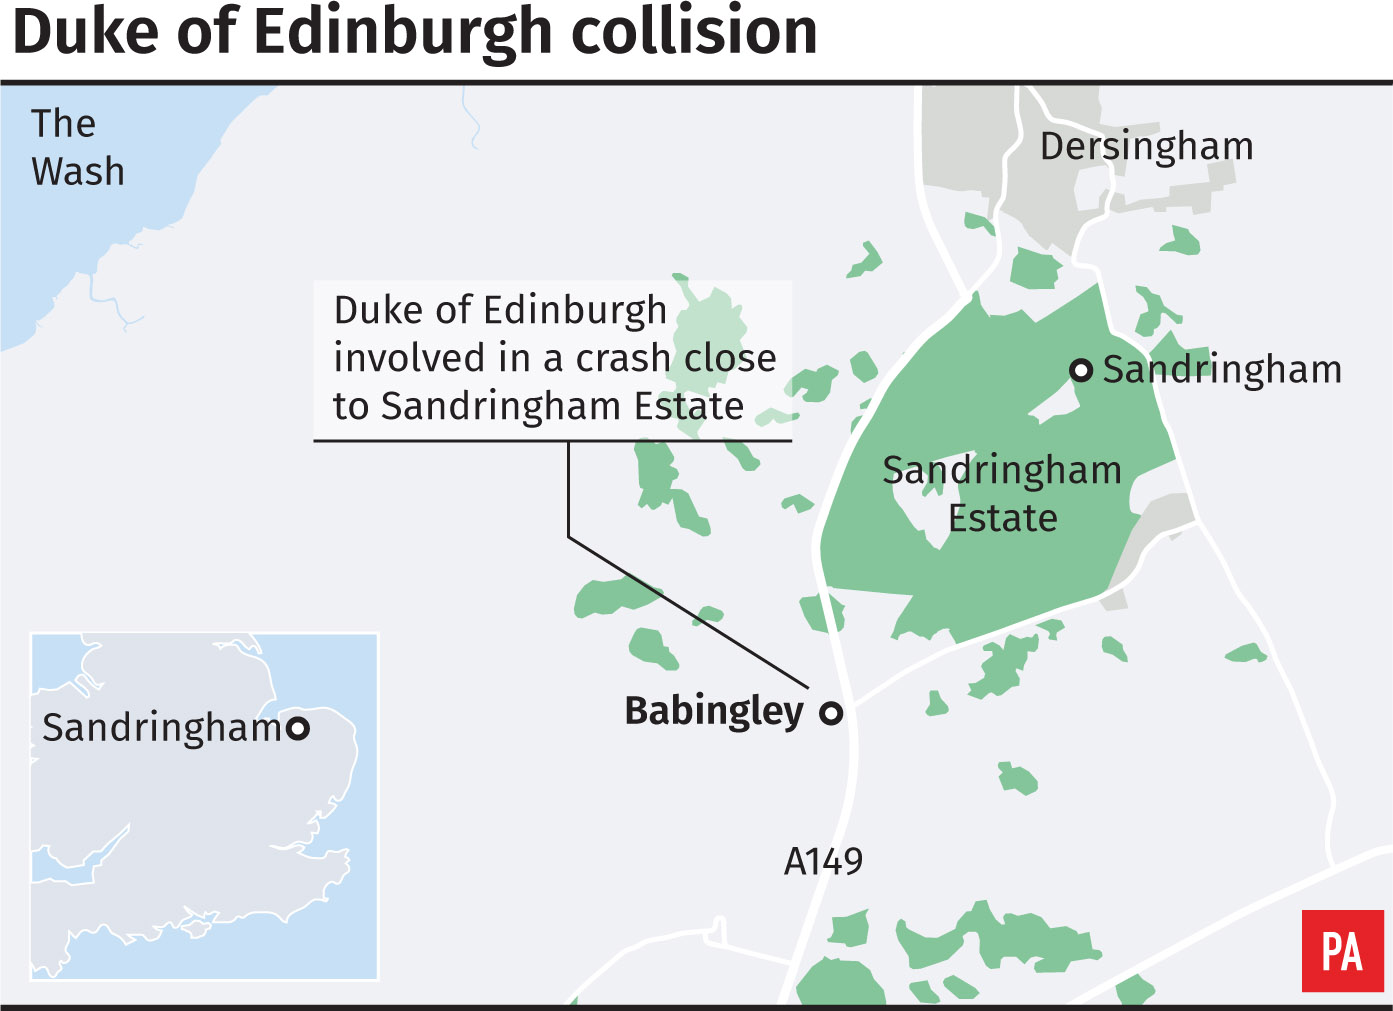 Locator of the Duke of Edinburgh's crash